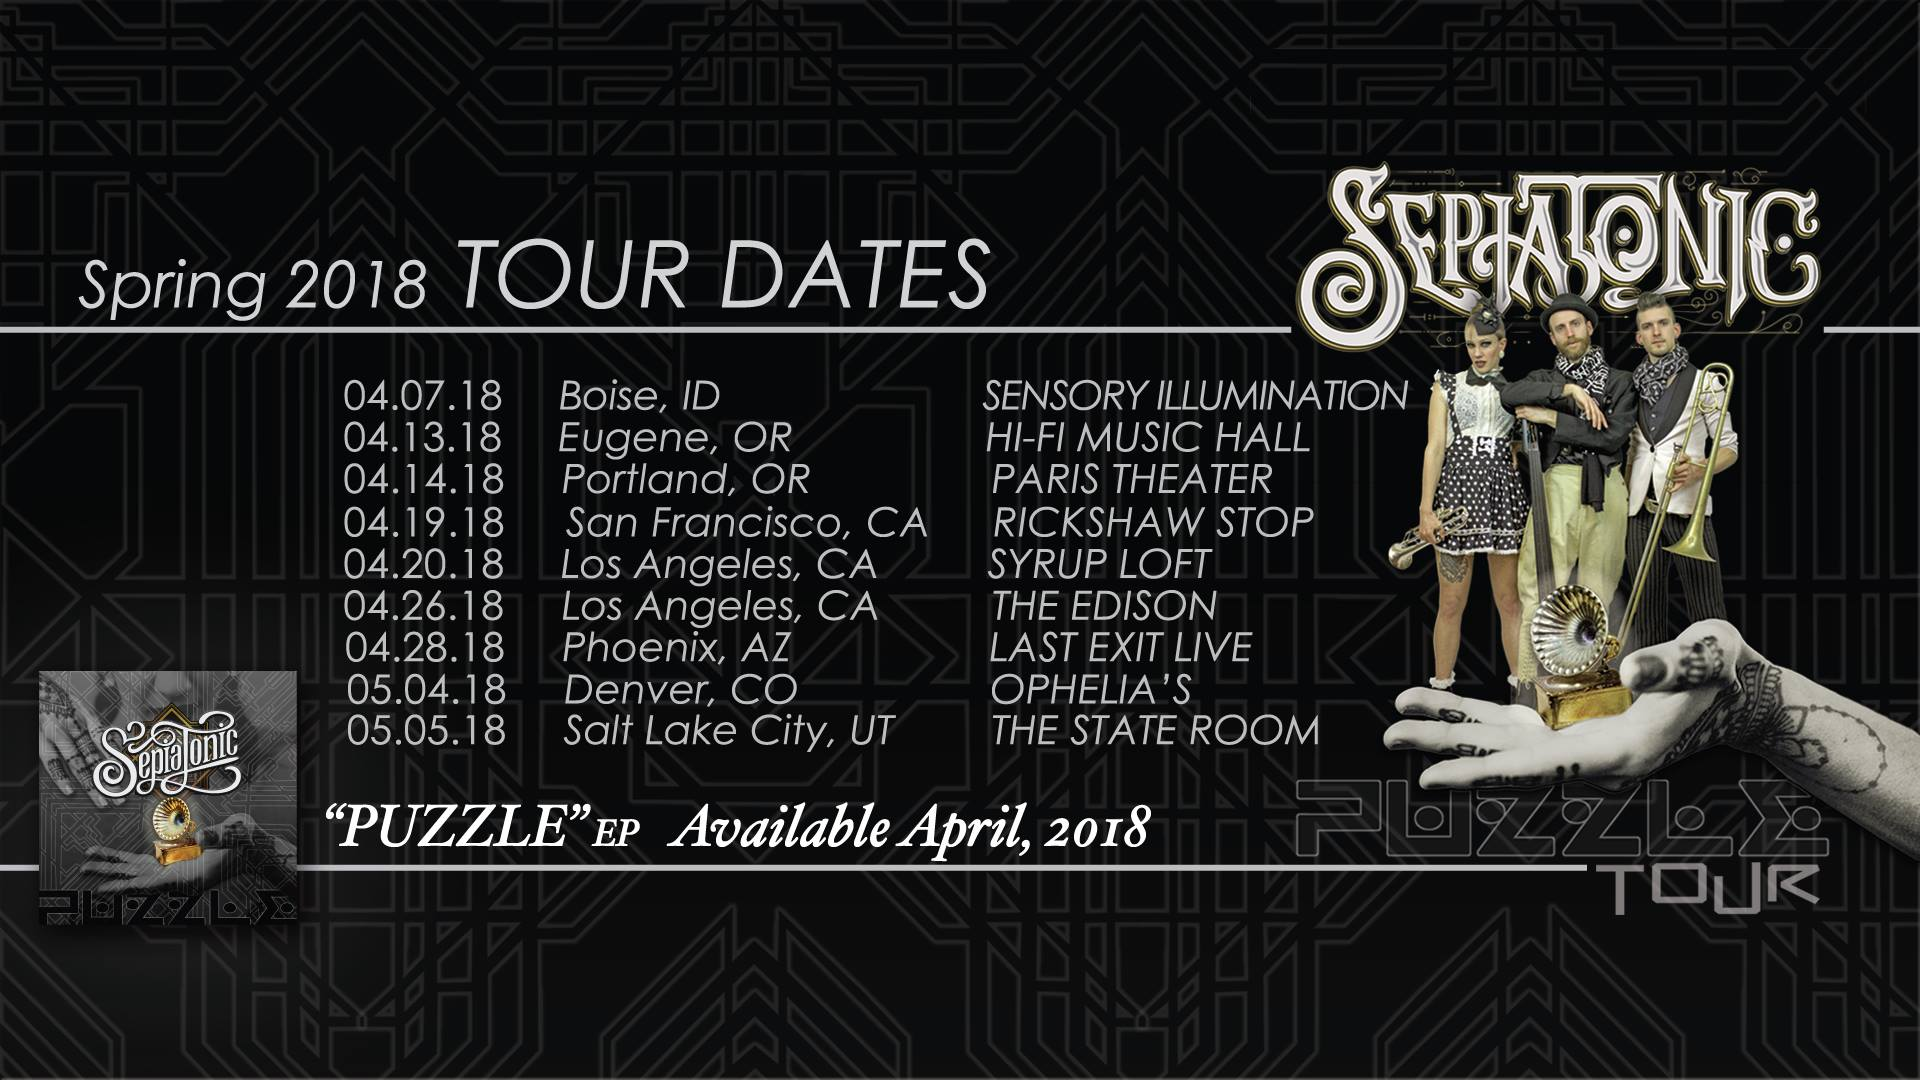 Sepiatonic On Tour This Spring!